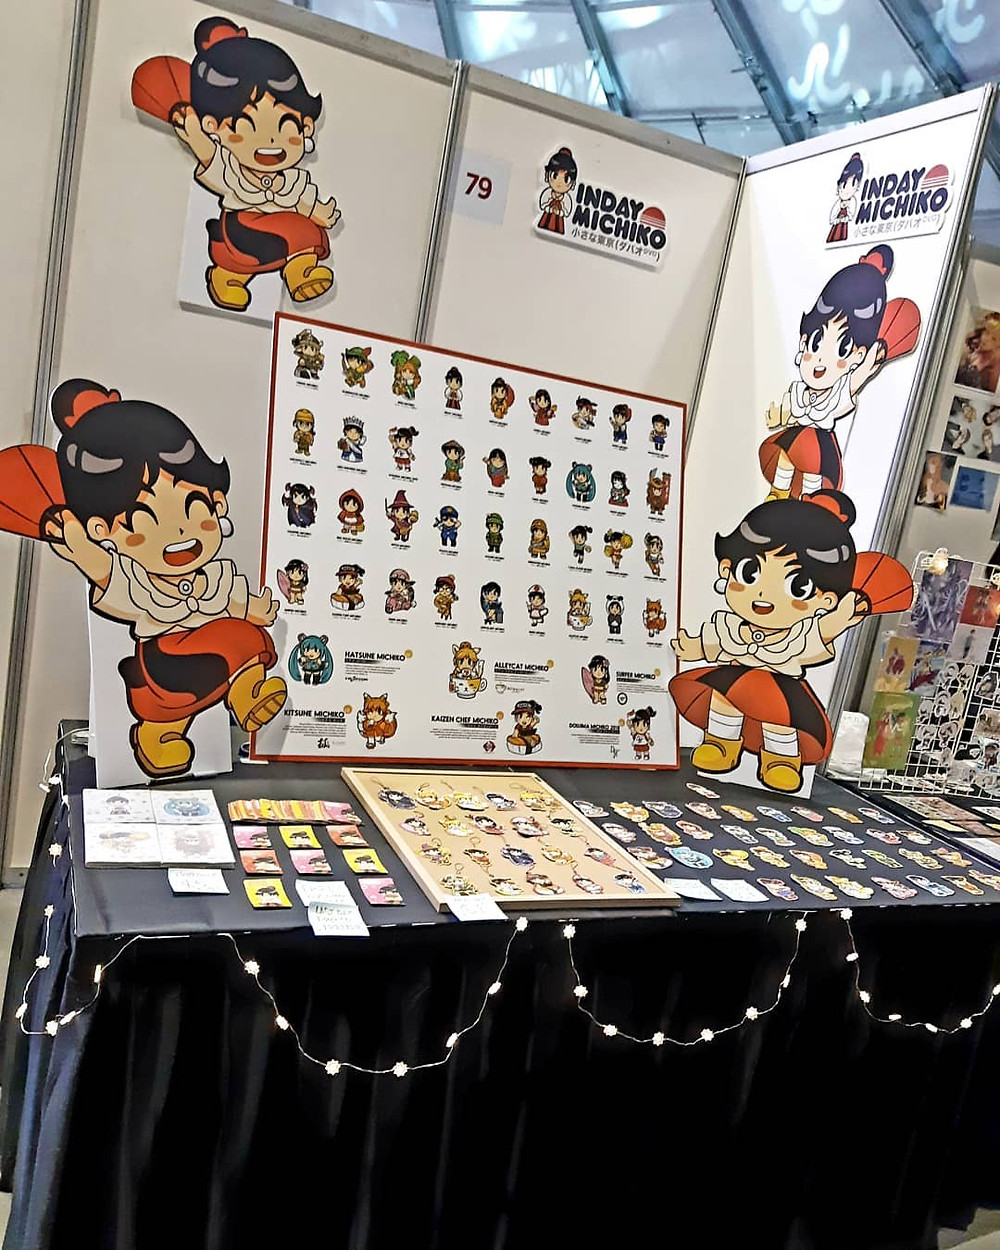 Inday Michiko's Booth at Cosfest 2018